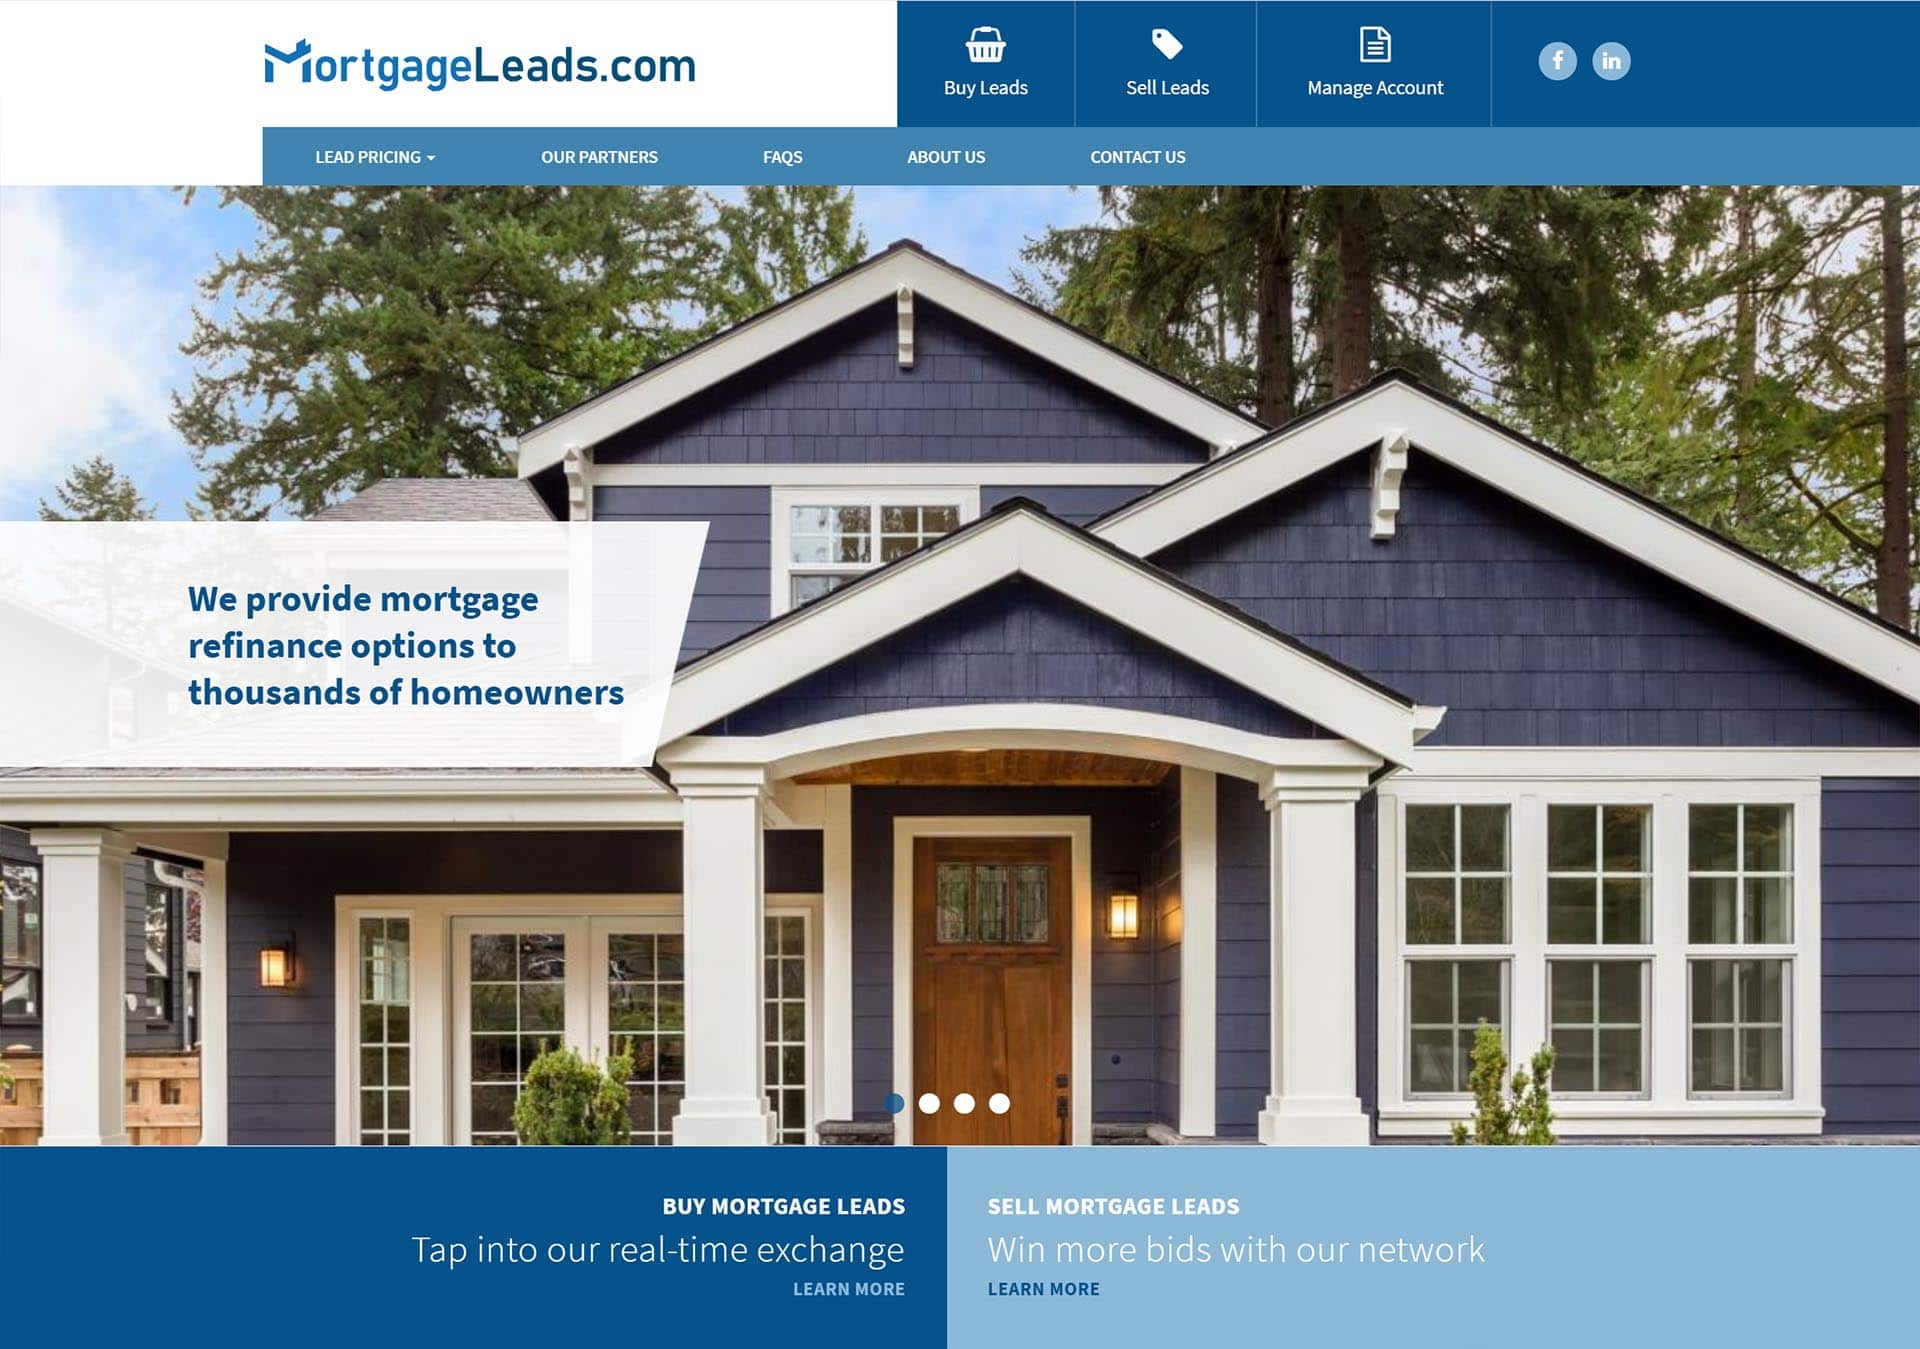 Astoria Company Launches MortgageLeads.com